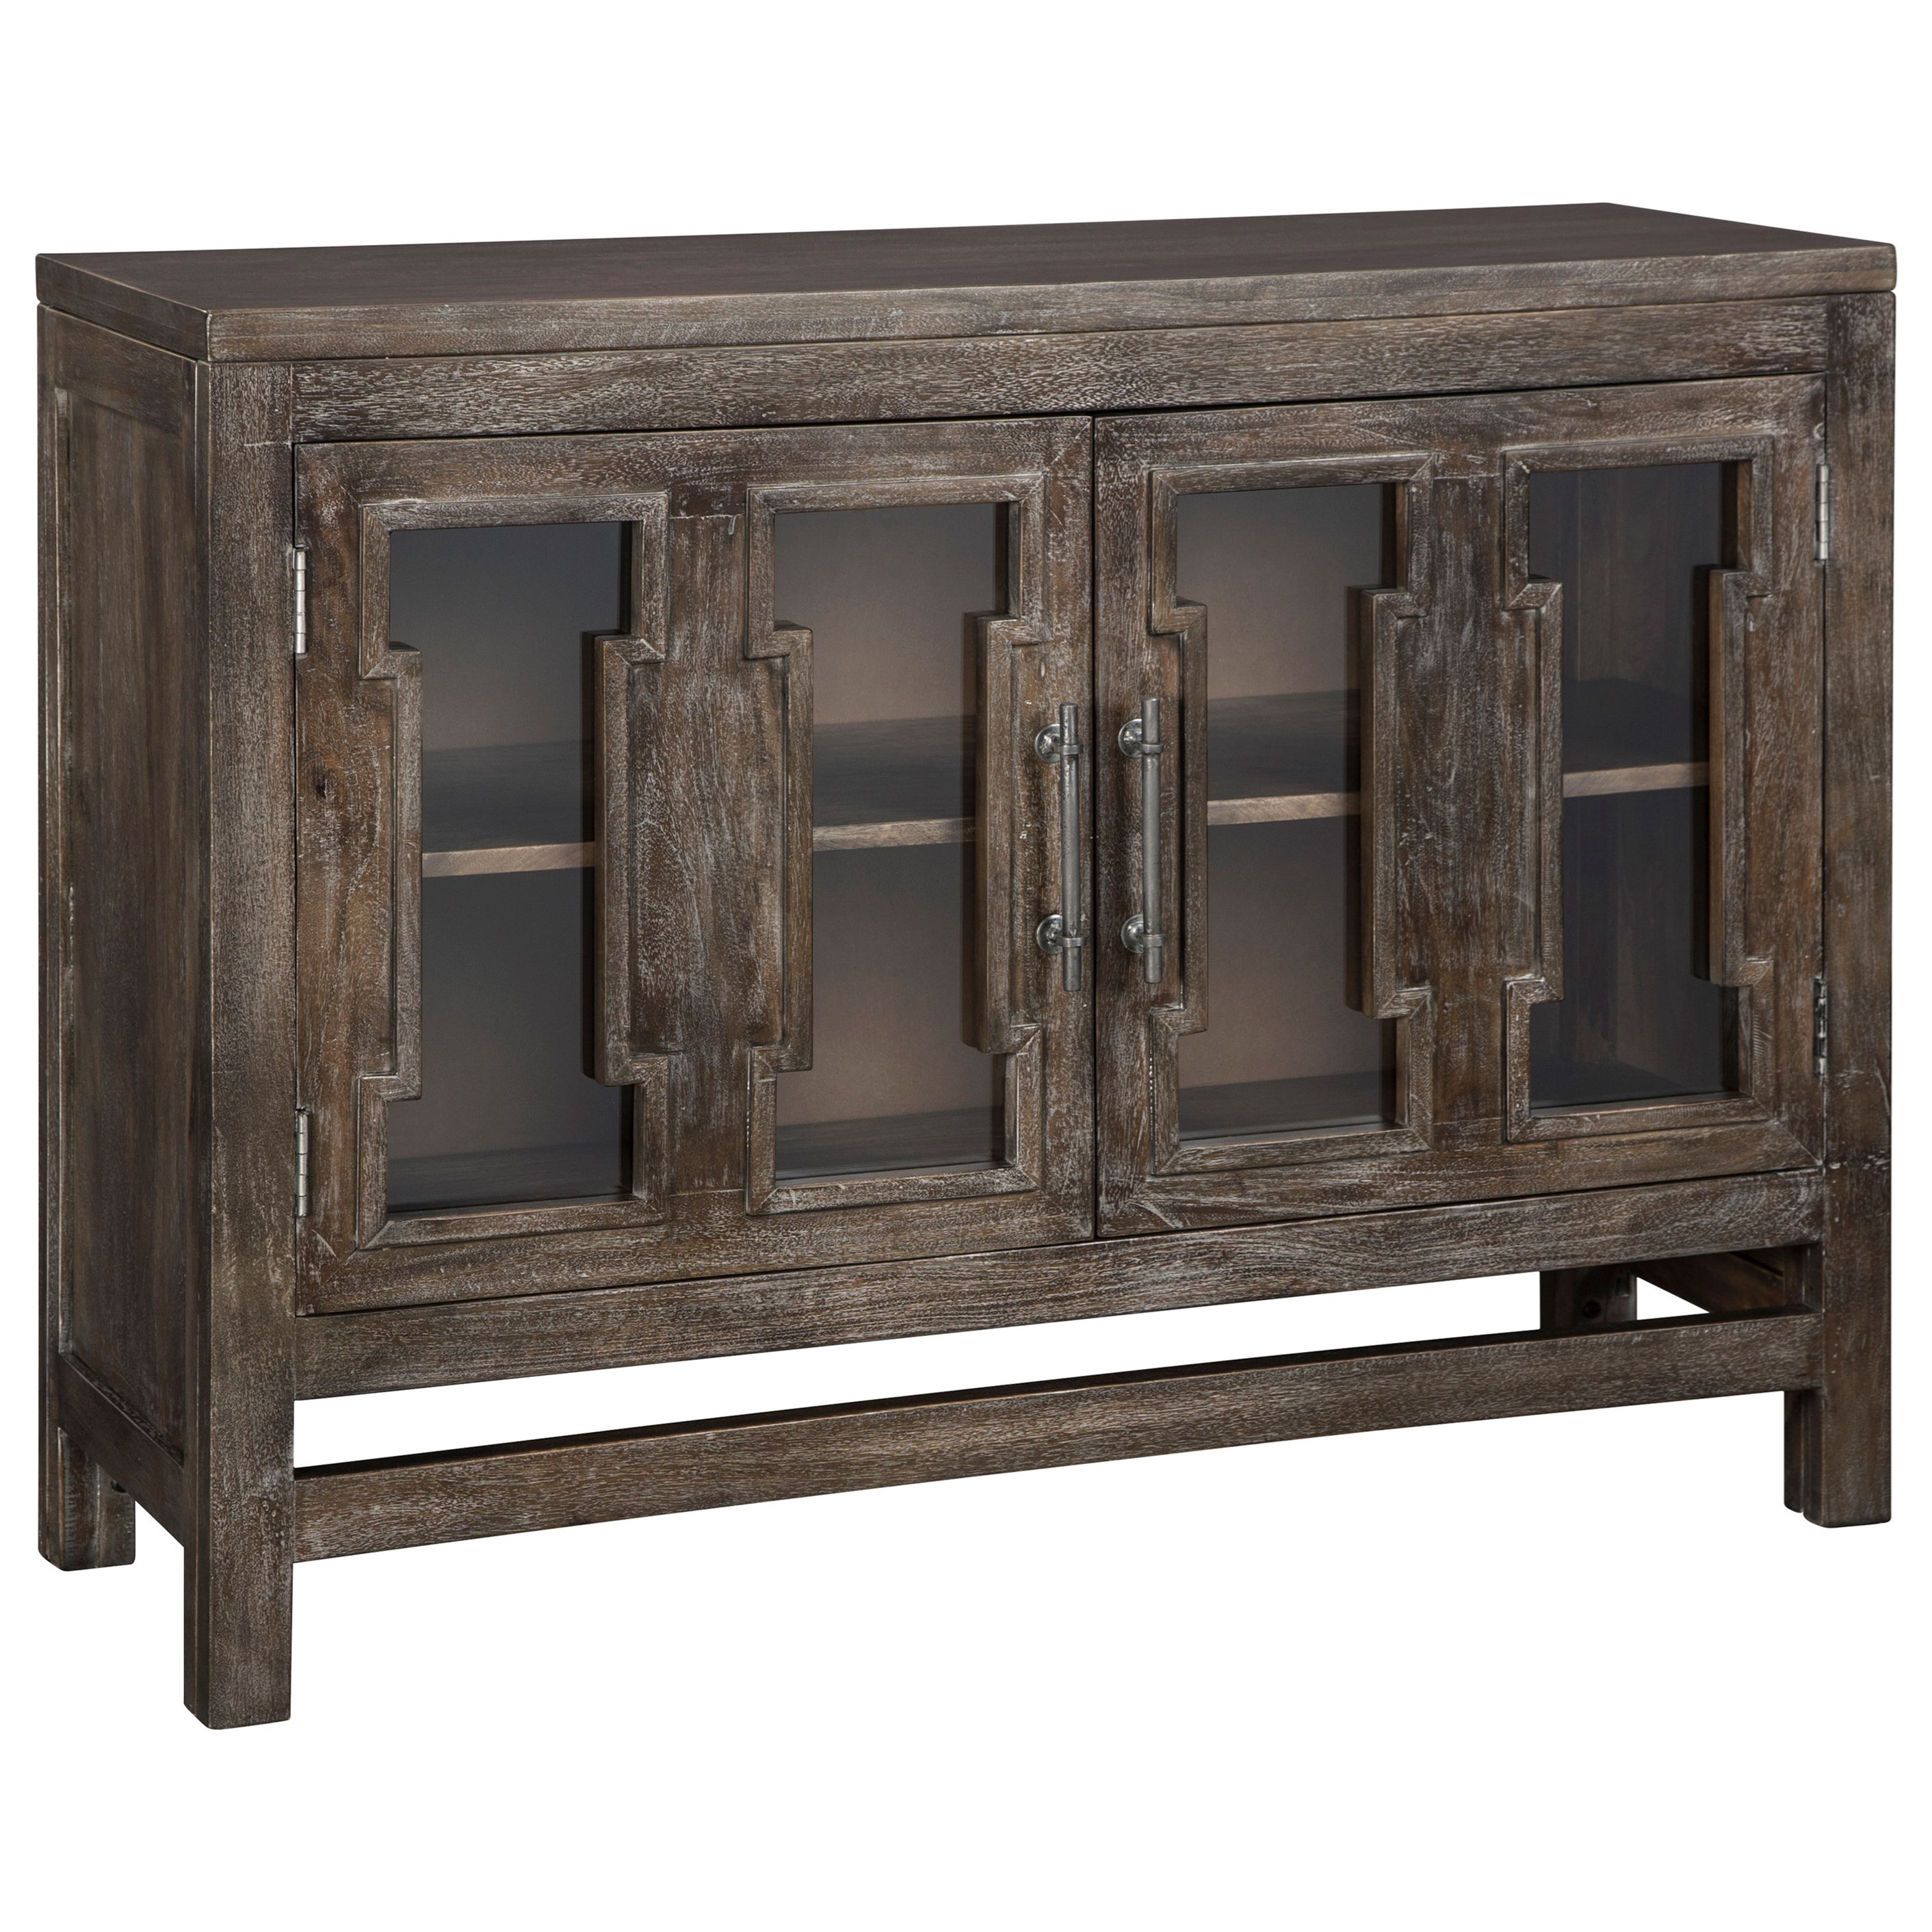 Hanimont Accent Cabinet by Ashley (Signature Design) at Johnny Janosik